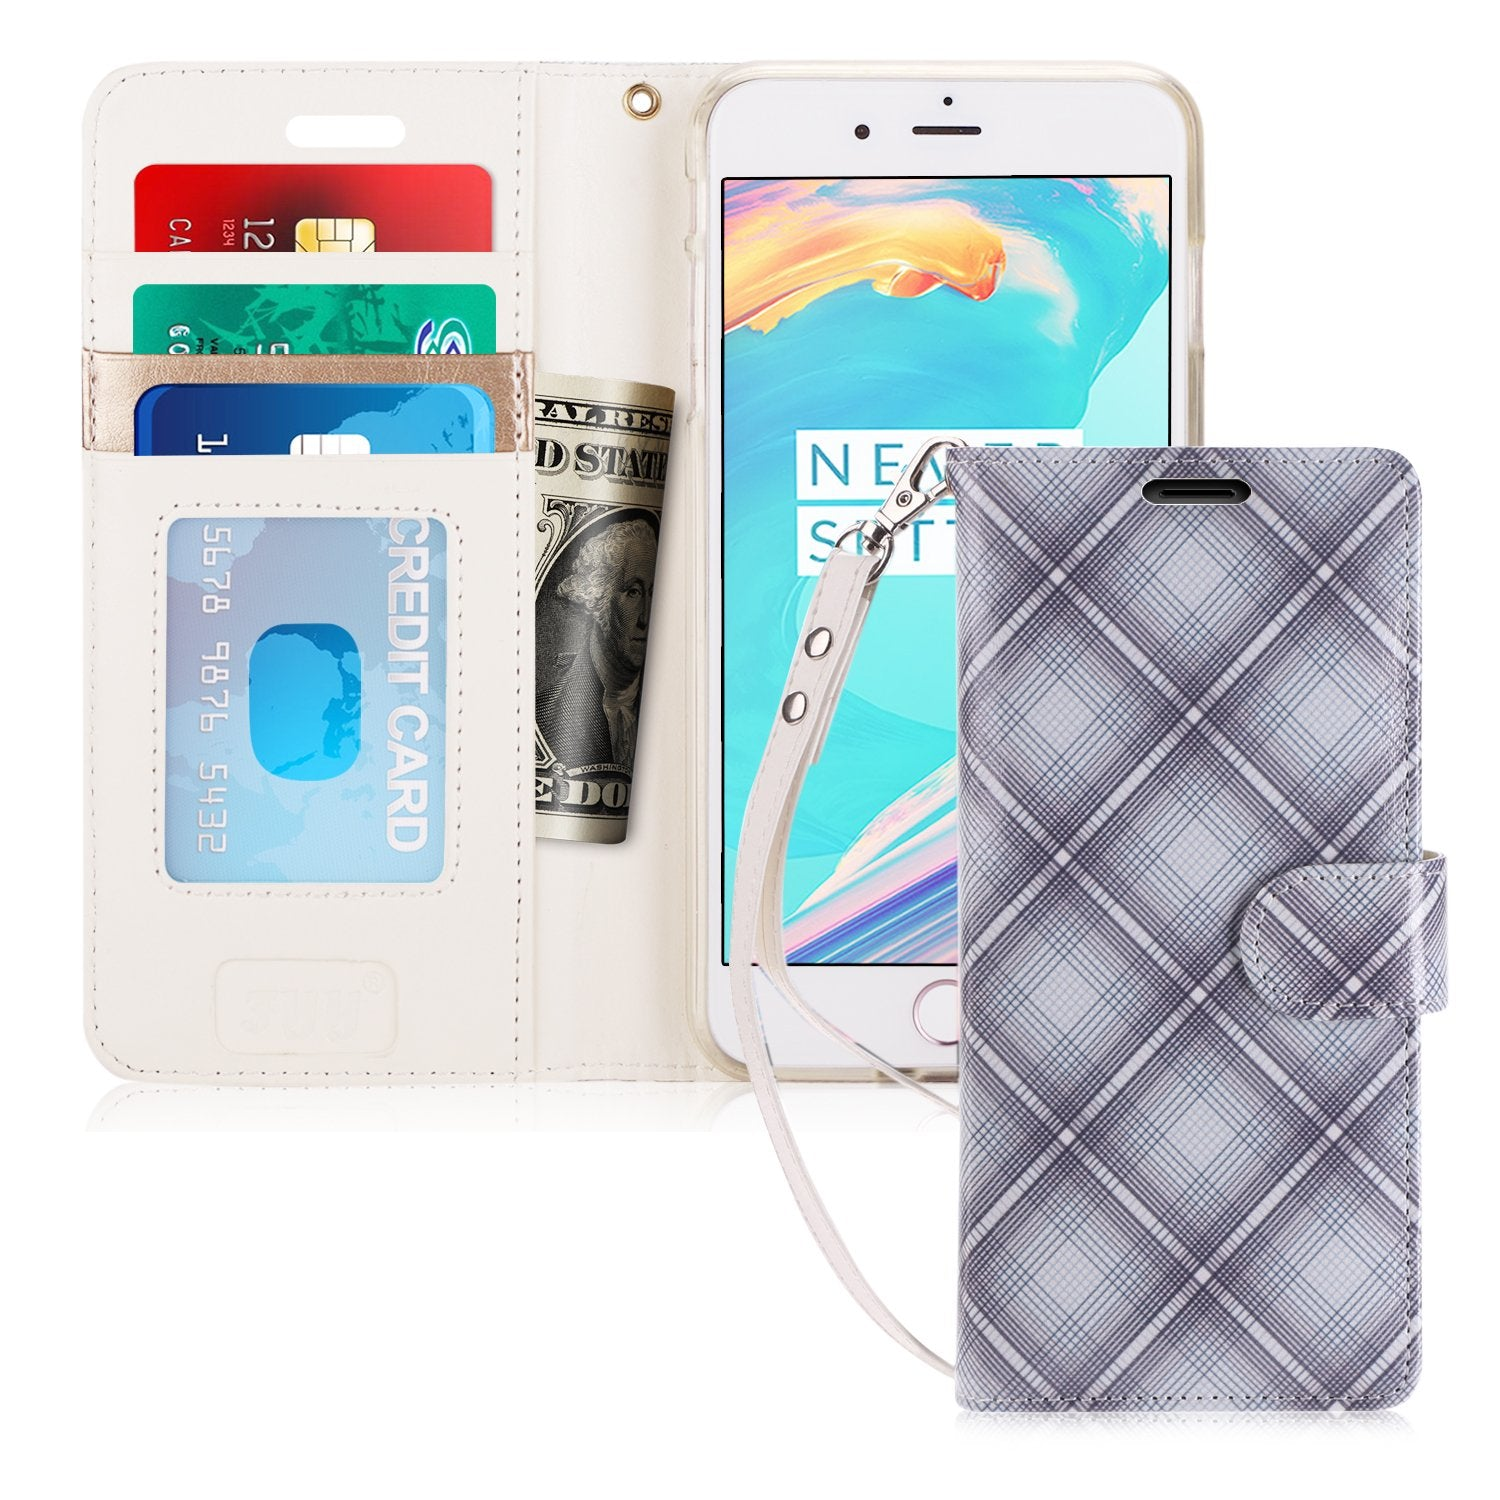 Flip Folio Leather Wallet Case for iPhone 8/7 Plus